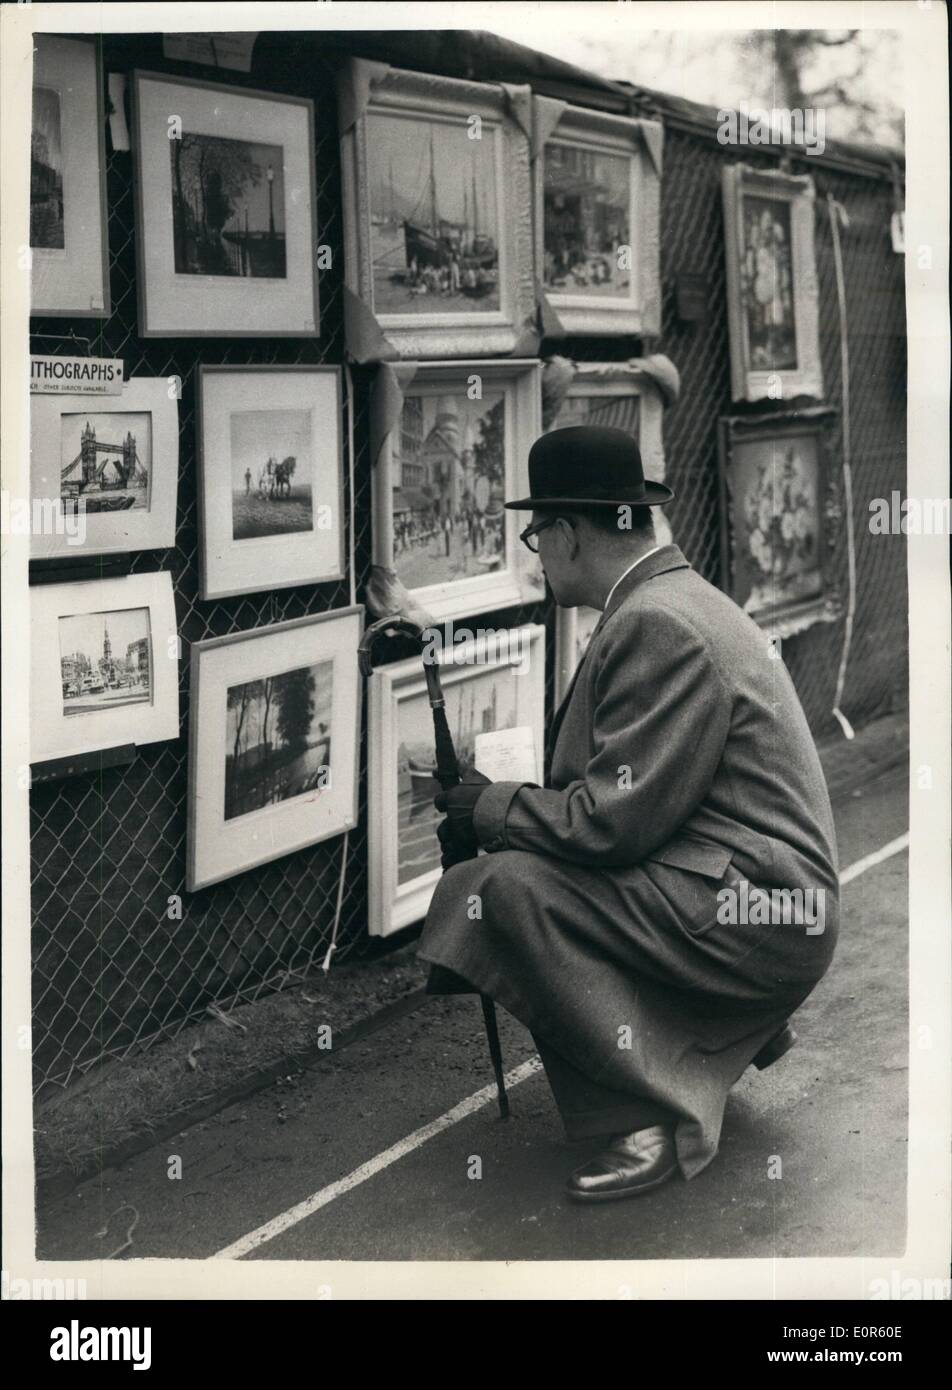 Apr. 04, 1958 - The 11th London County Council's Open-Air Art Show At Victoria Embankment: About 1,000 pictures will be on show - Stock Image